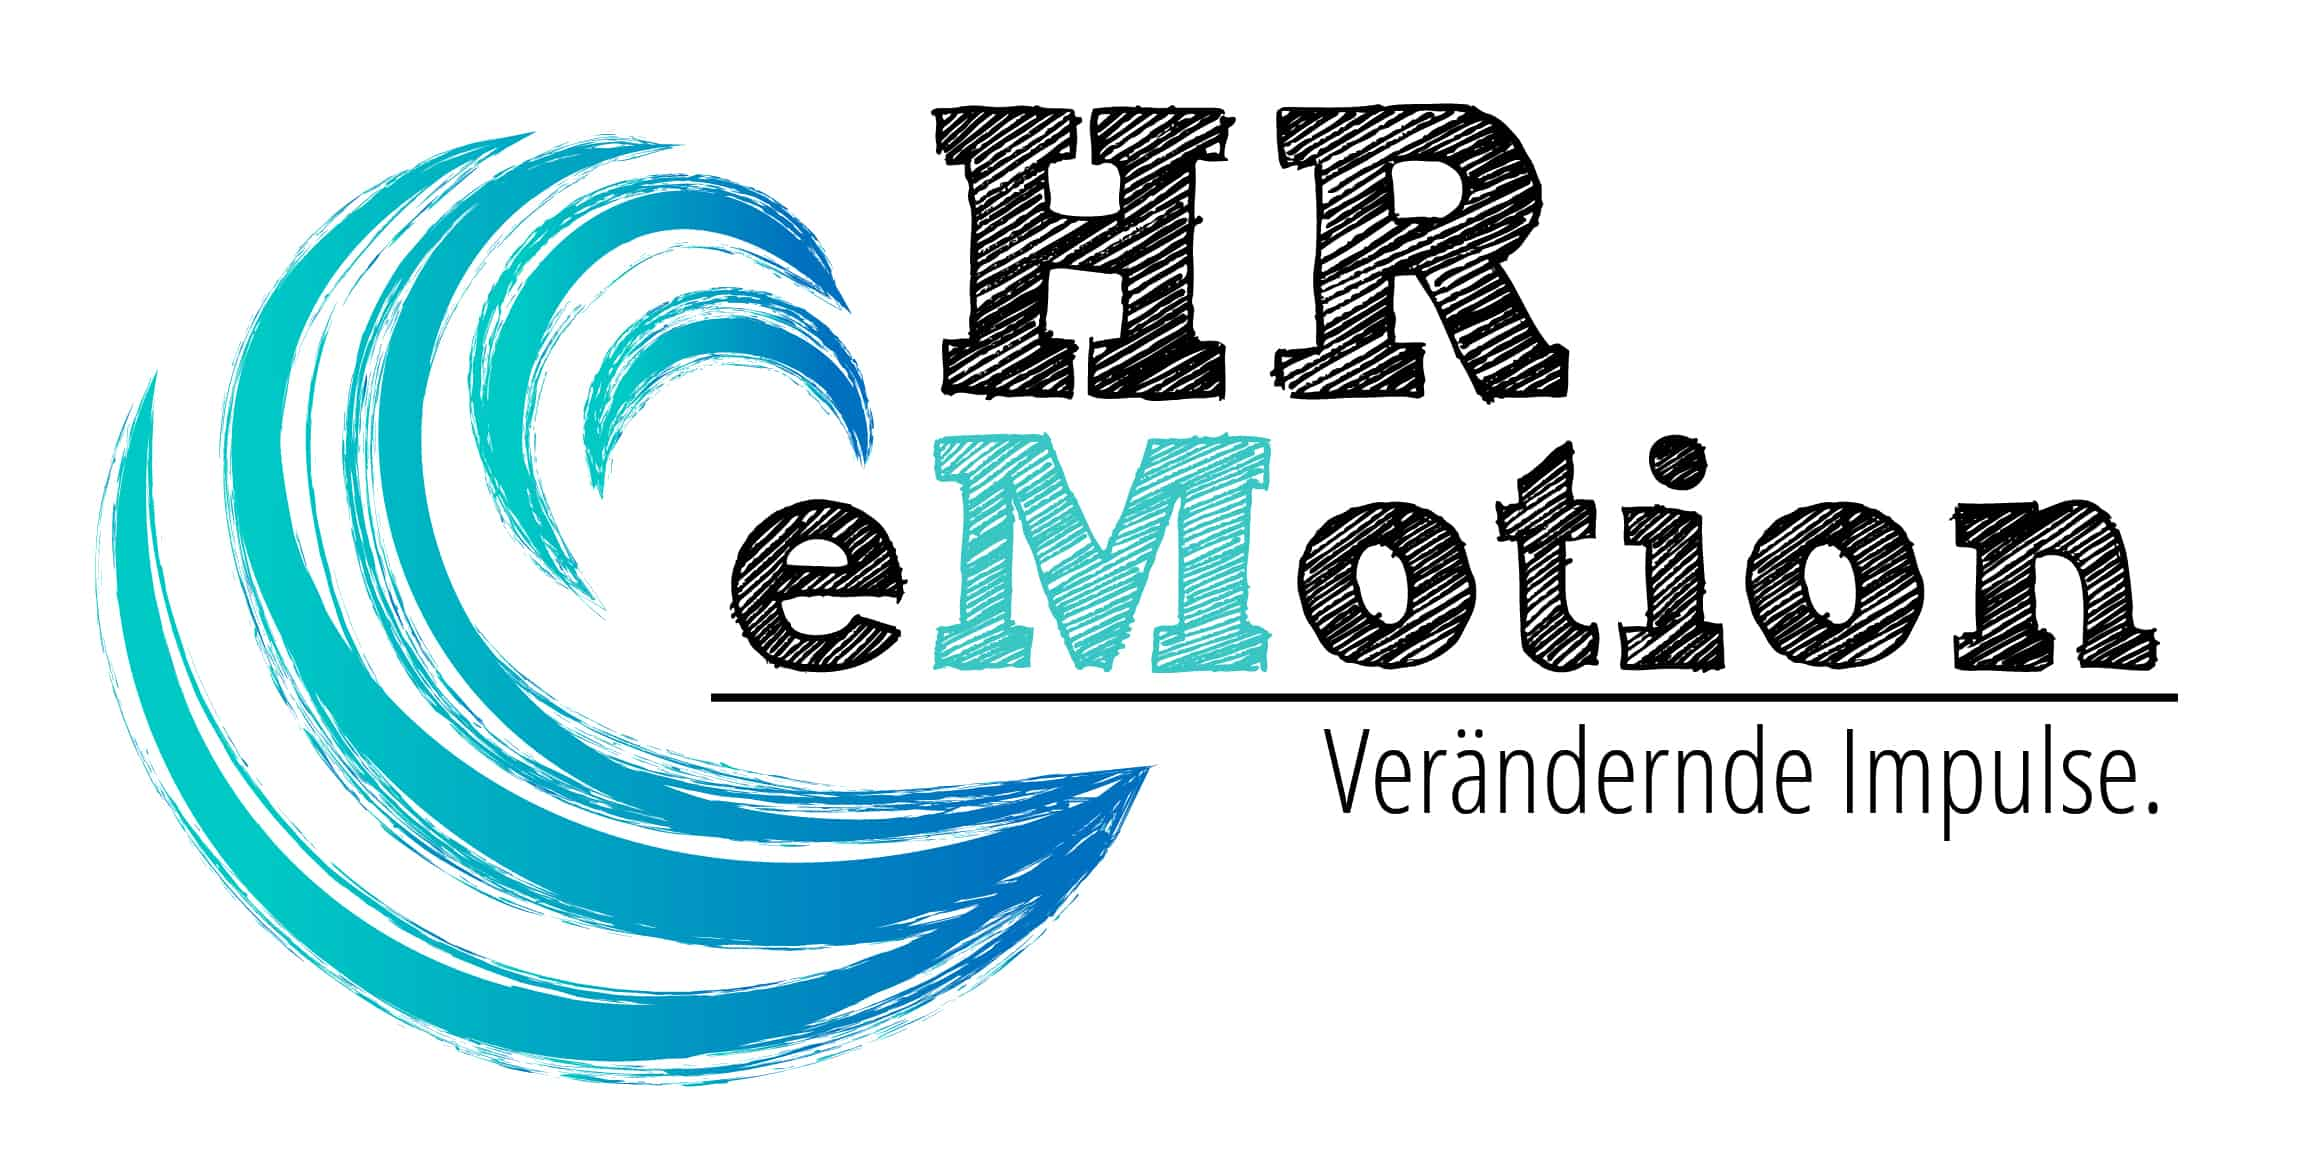 HR eMotion